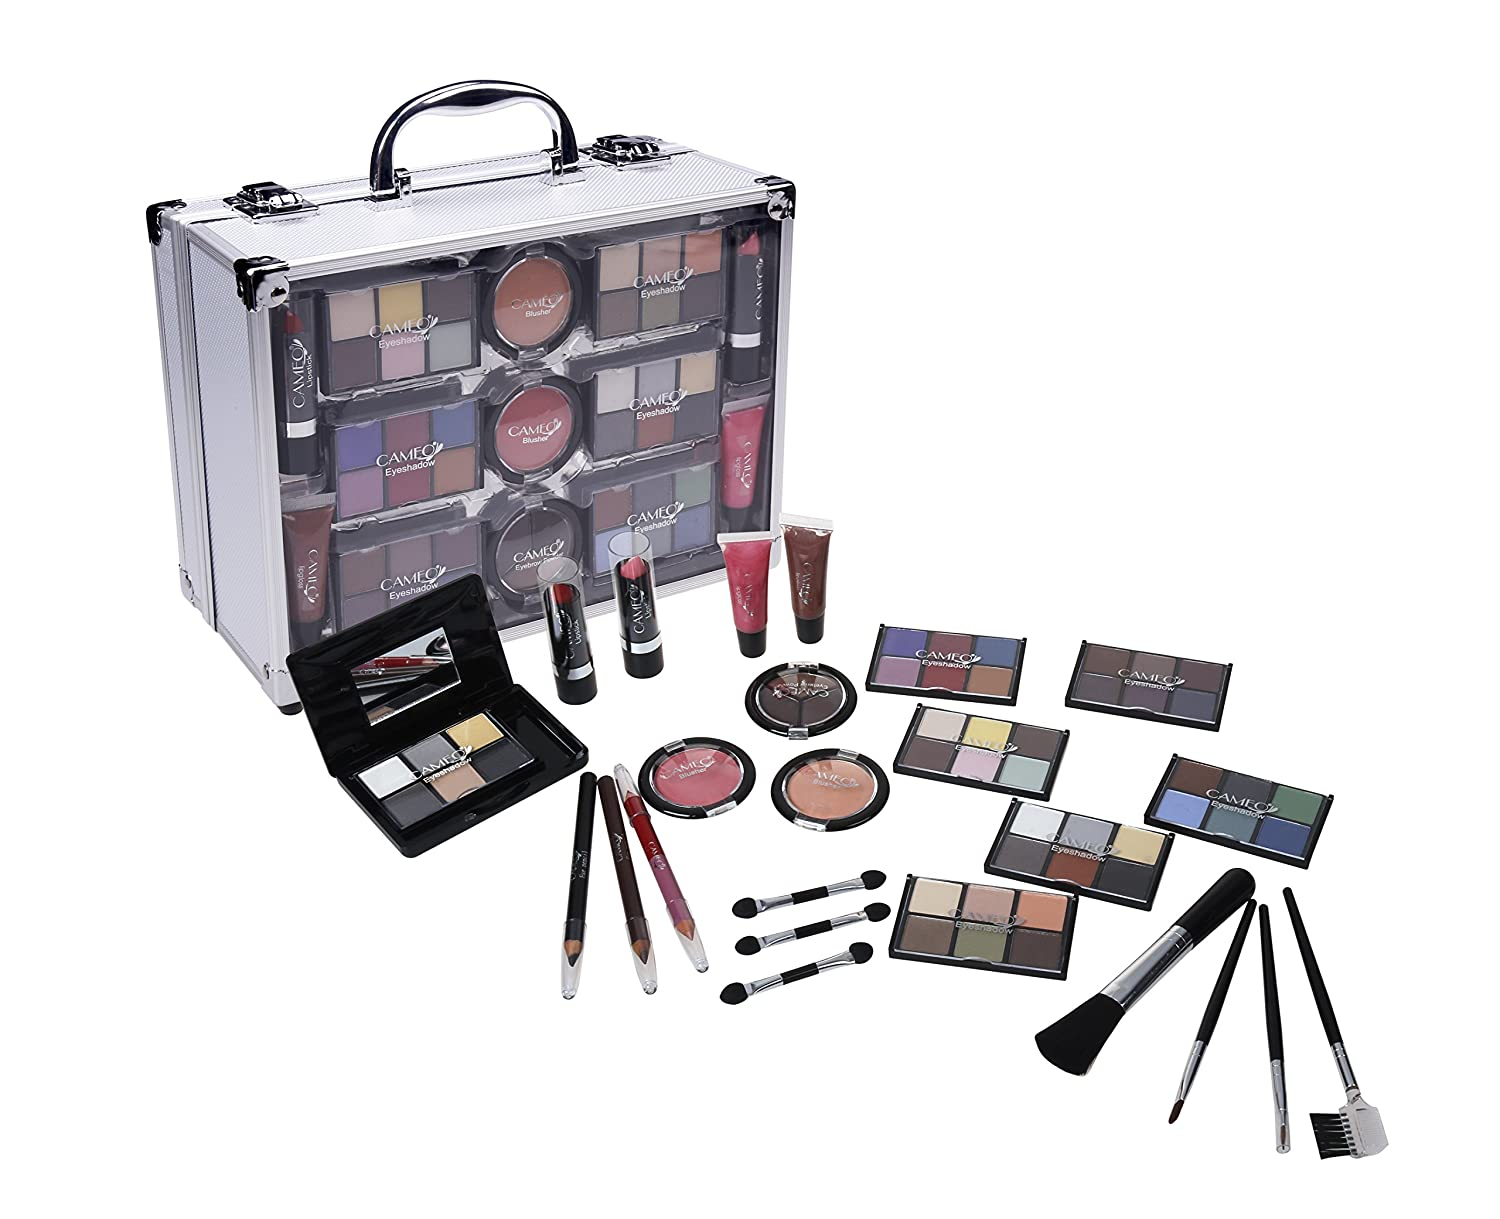 Cameo Carry All Trunk Makeup Kit with Reusable Aluminum Case Exclusive Holiday Gift Set, Black/White